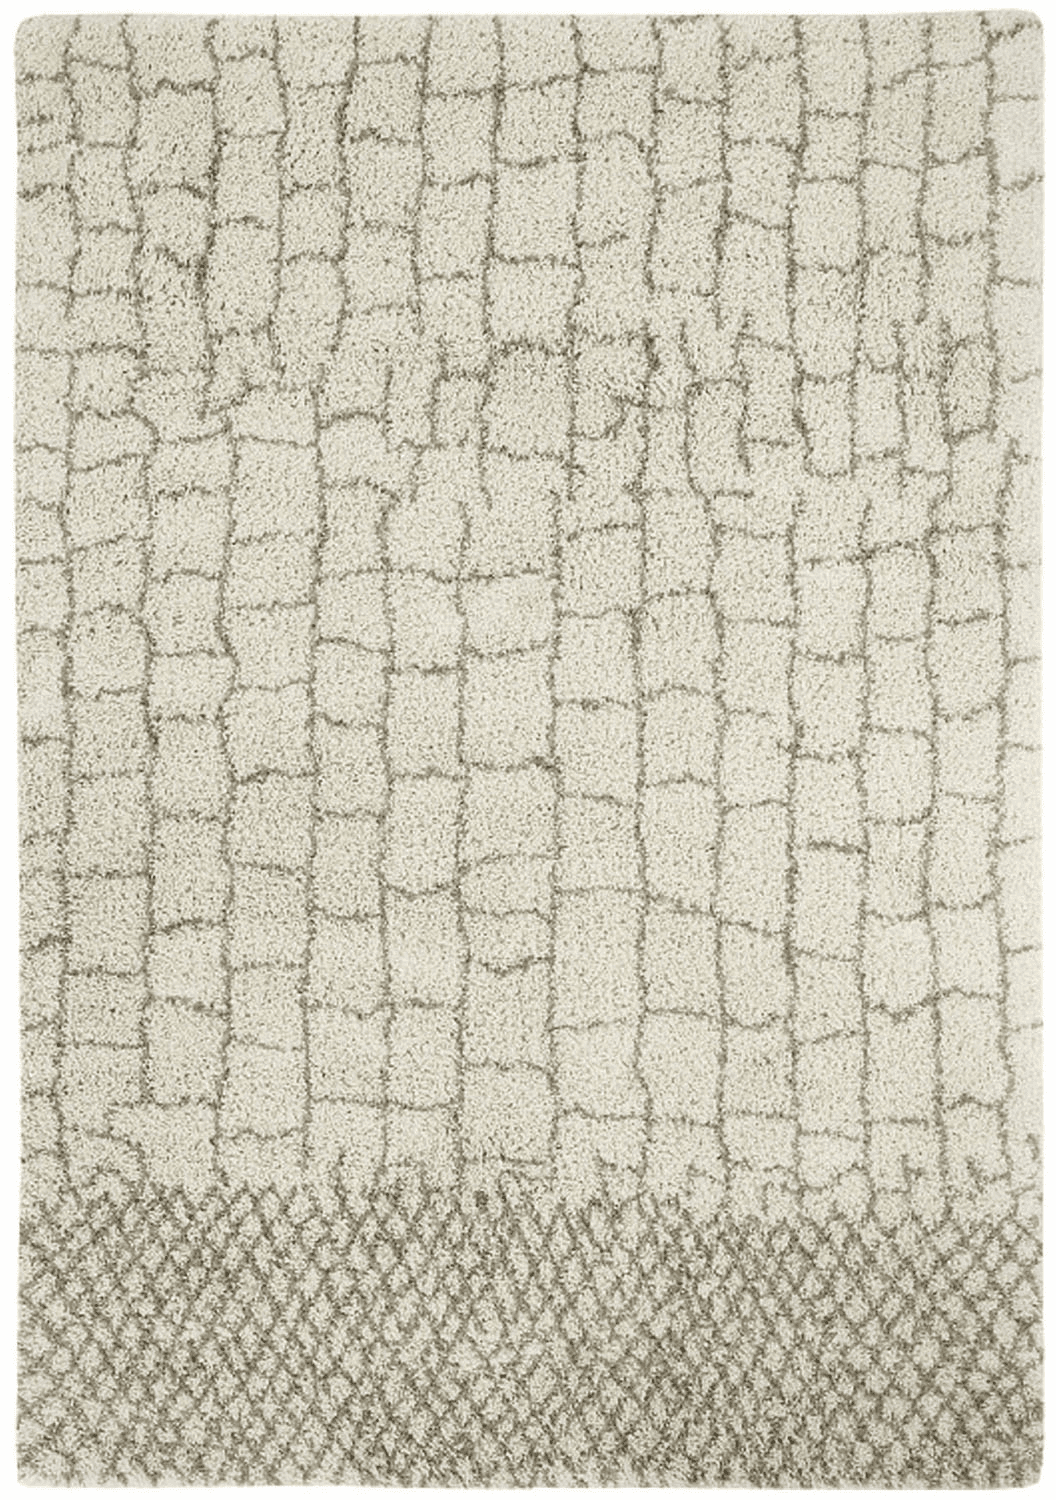 Machine Woven Rock Rug